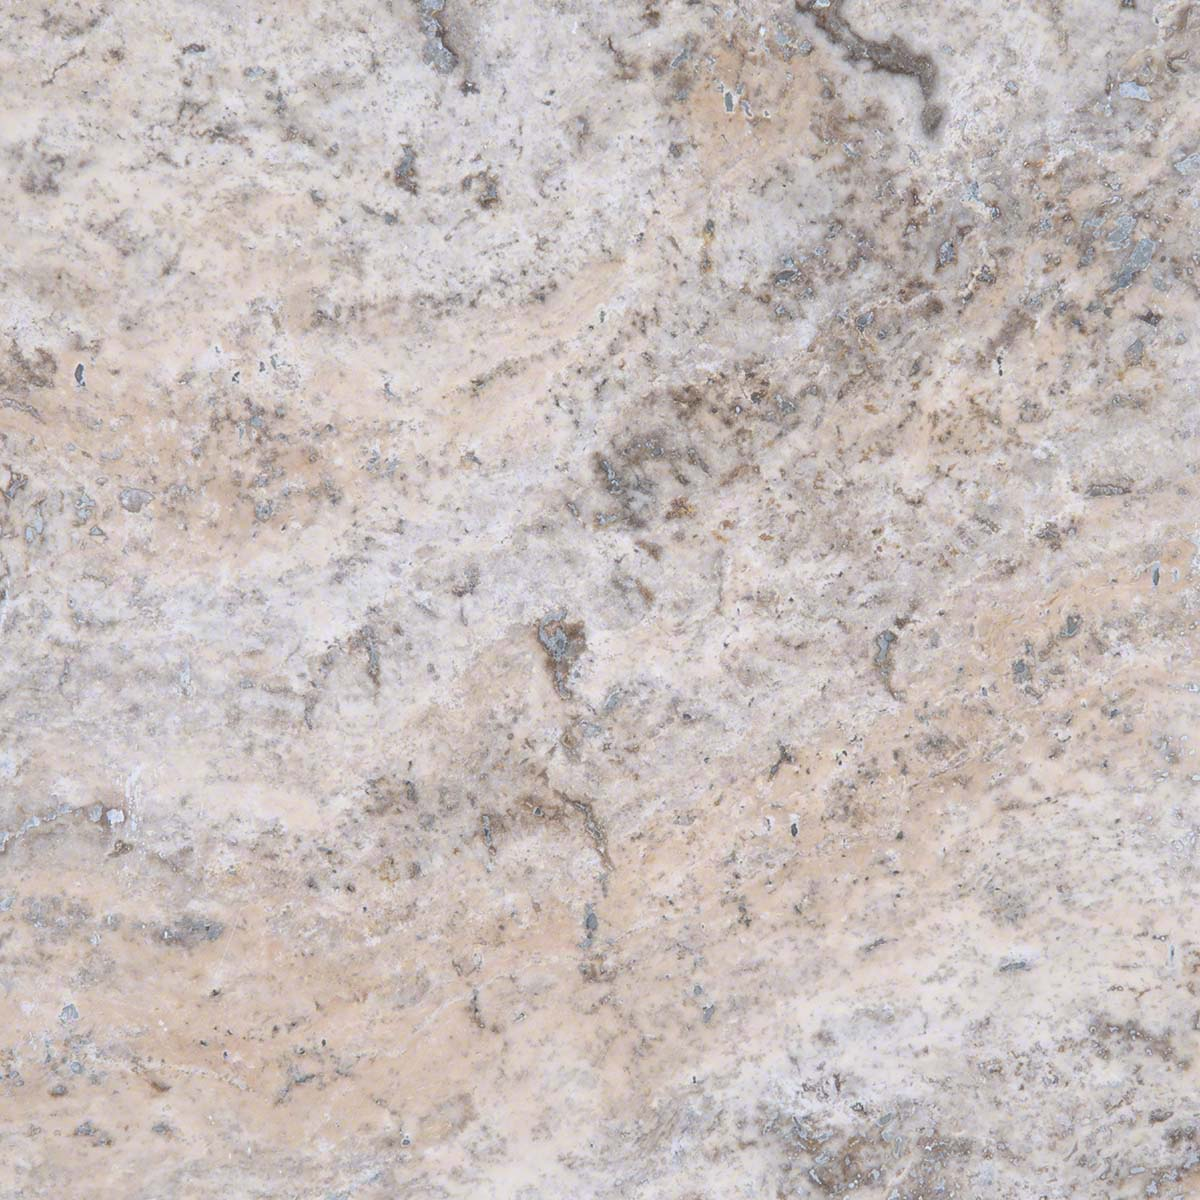 NATURAL STONE TRAVERTINE COLLECTIONS, Tiles and Flooring msi-tiles-flooring-silver-travertine-3x6-2-TTSILTR36T